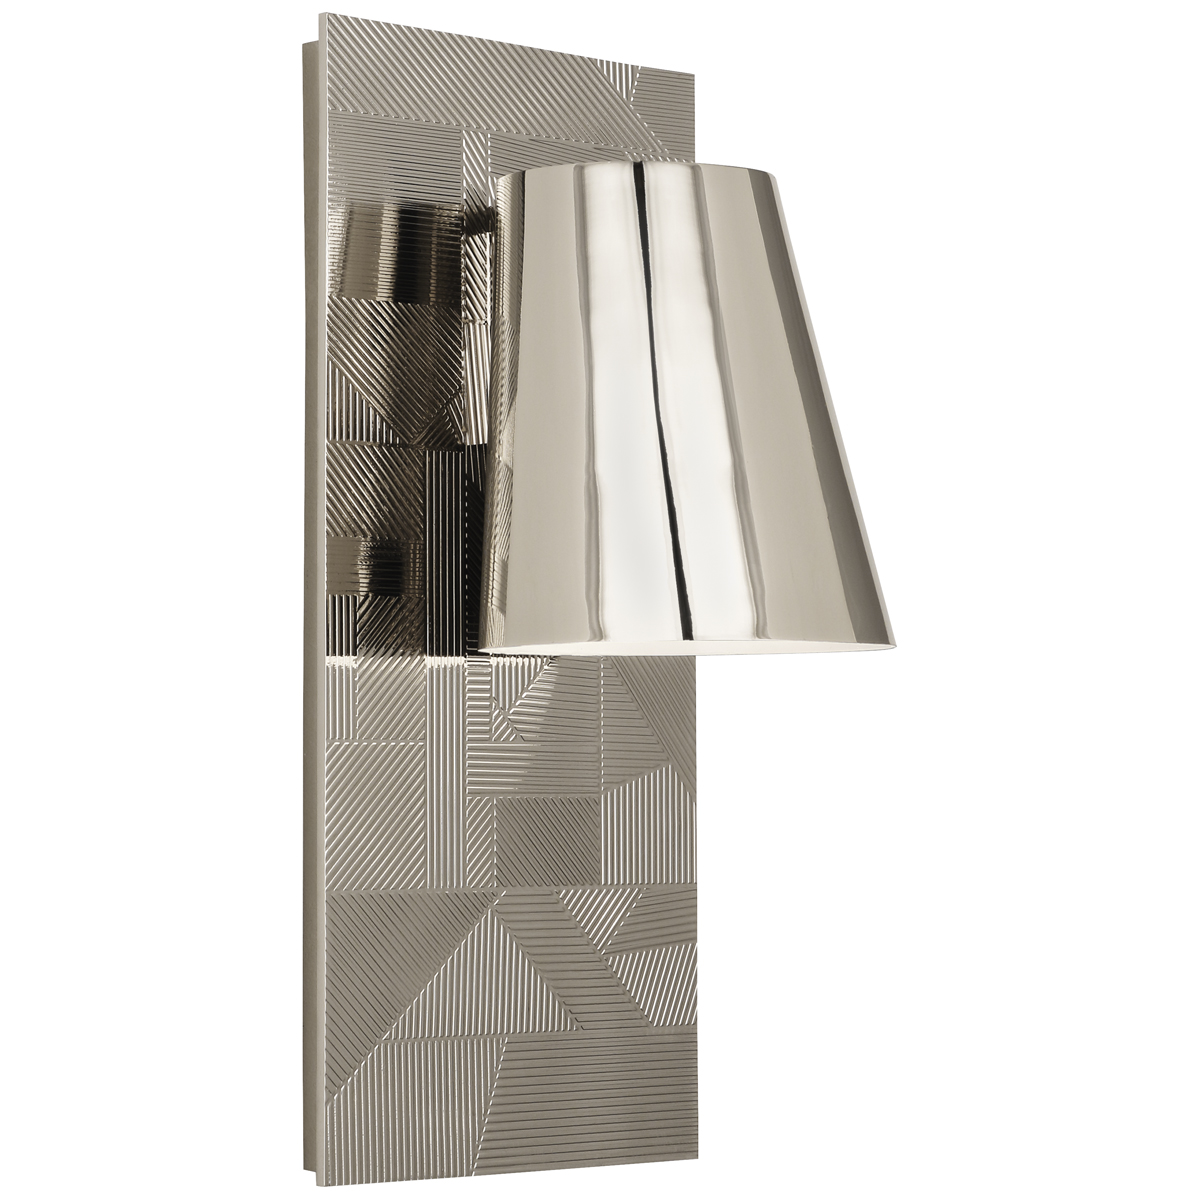 Michael Berman Brut Wall Sconce